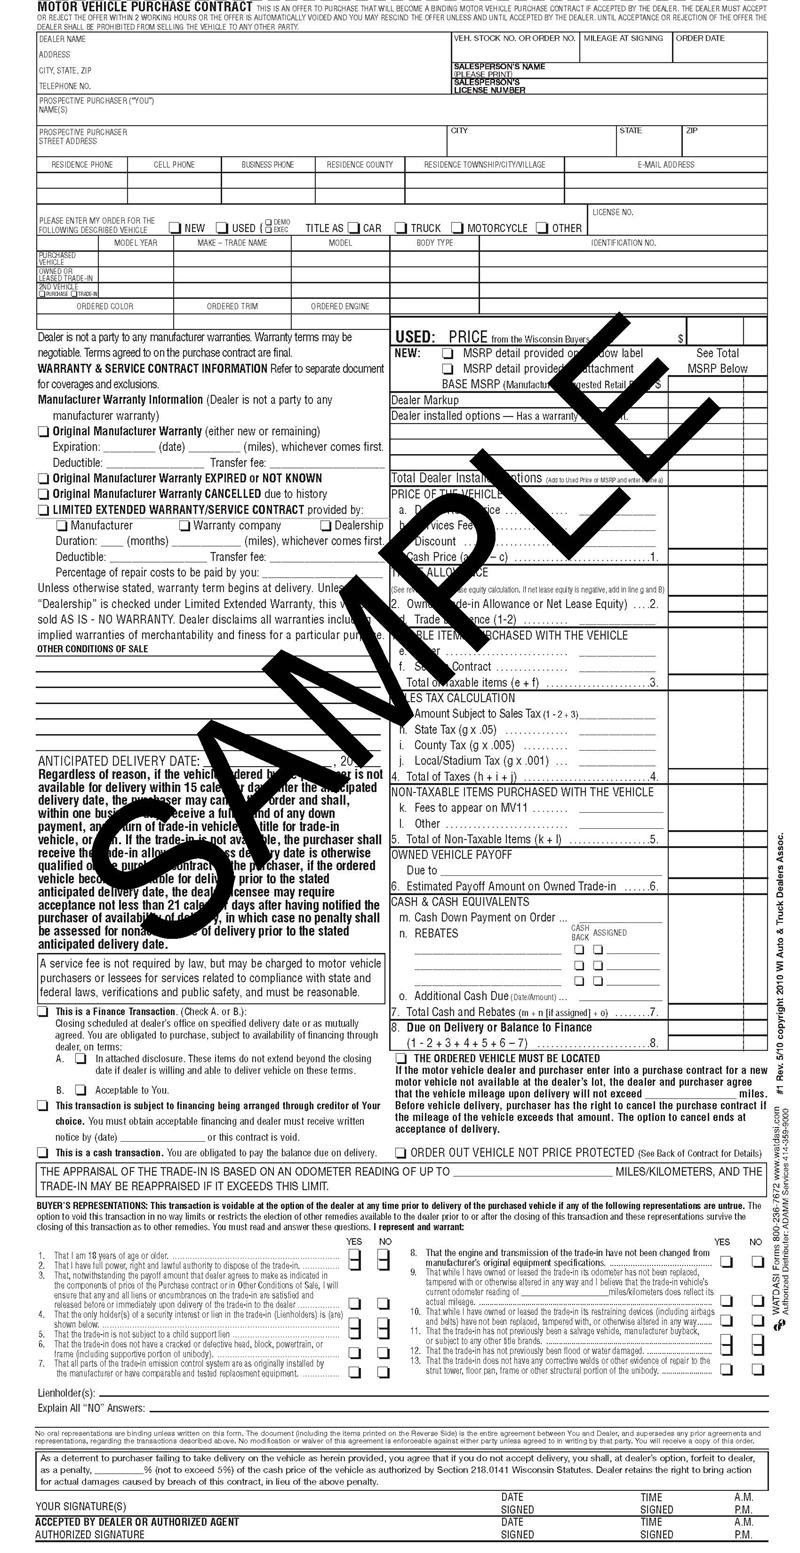 Contract For Selling A Car >> Standard Motor Vehicle Purchase Contract, 2014 rev, 100 pk